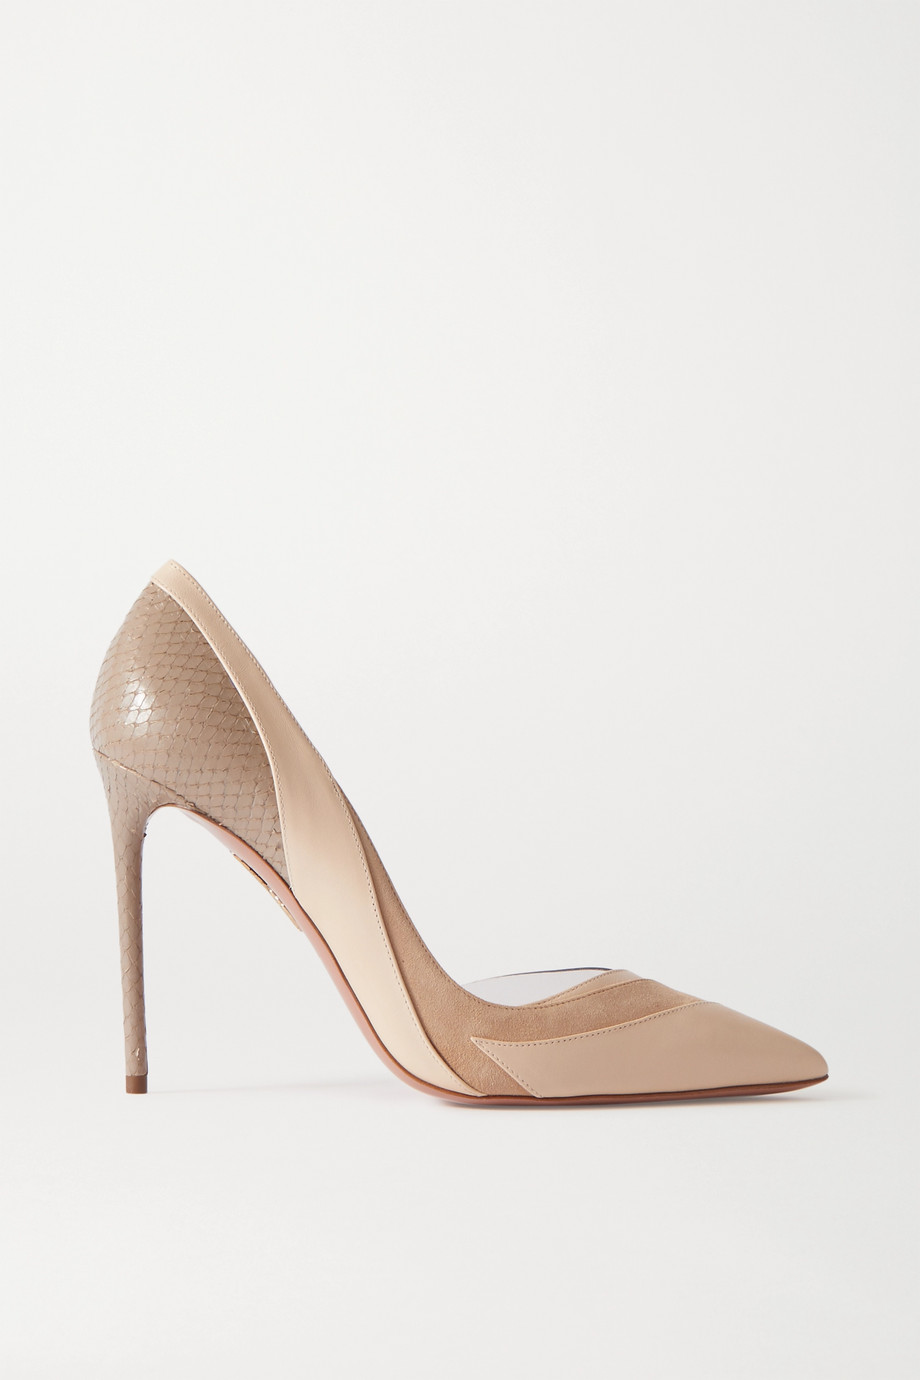 Aquazzura Seine suede, leather and PVC pumps